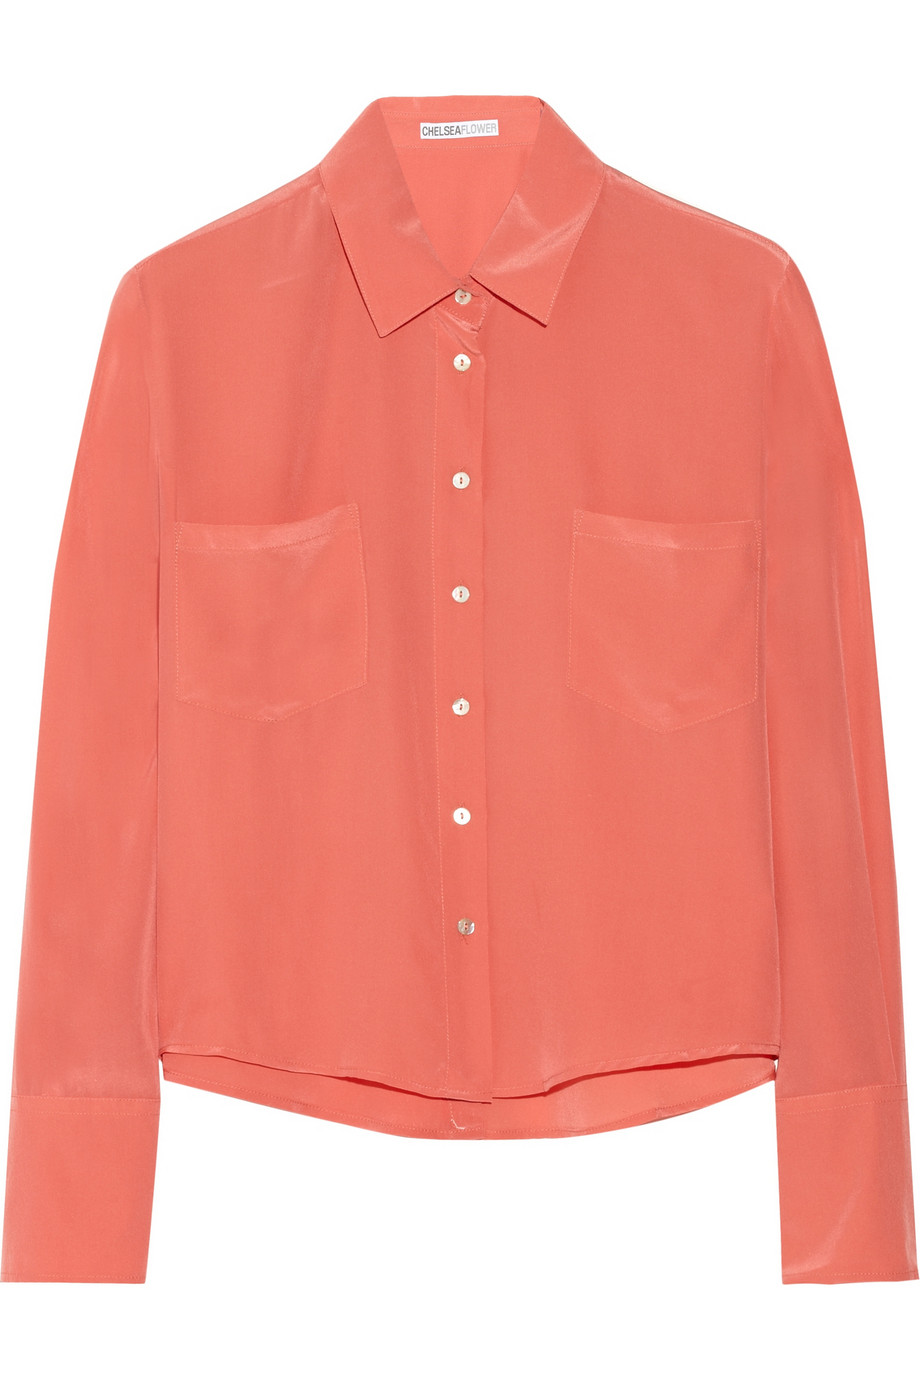 Washed-silk shirt | Chelsea Flower | 50% off | THE OUTNET